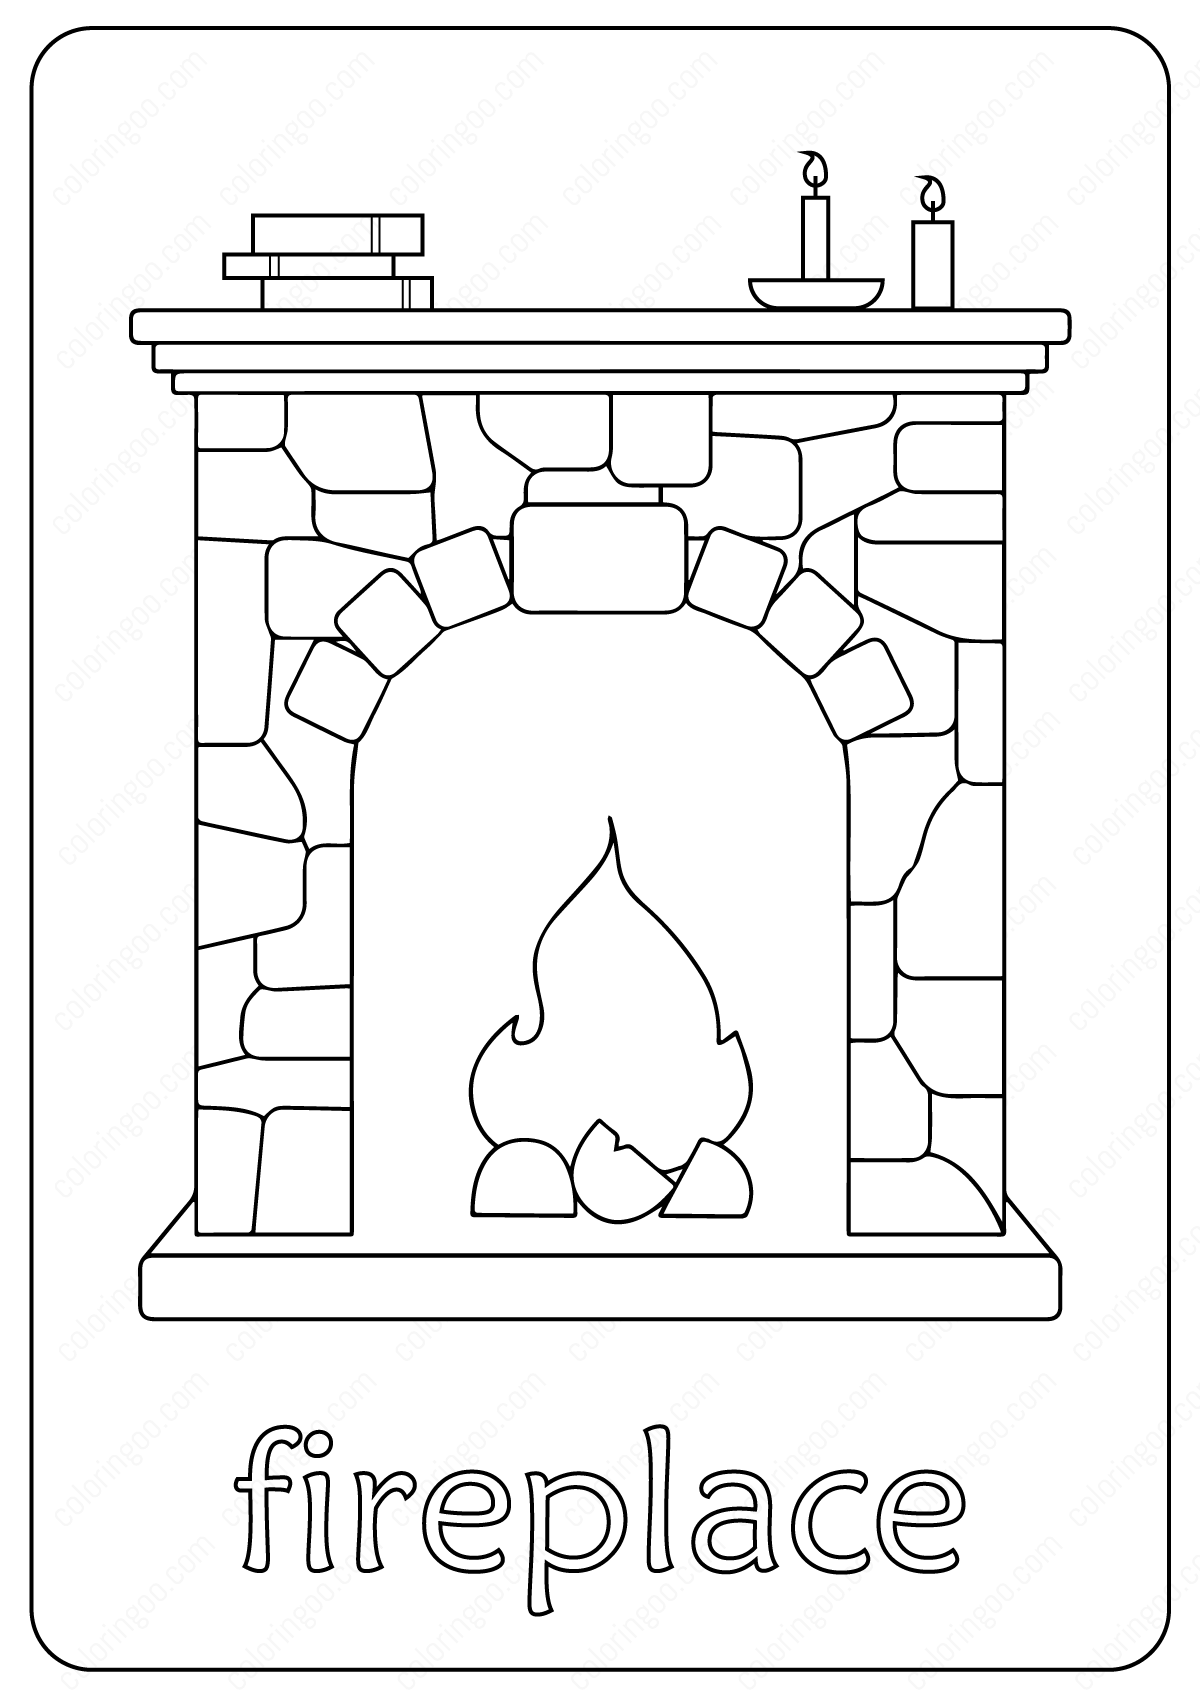 Free Printable Fireplace Coloring Pages Coloring Pages Elsa Coloring Pages Fireplace Drawing